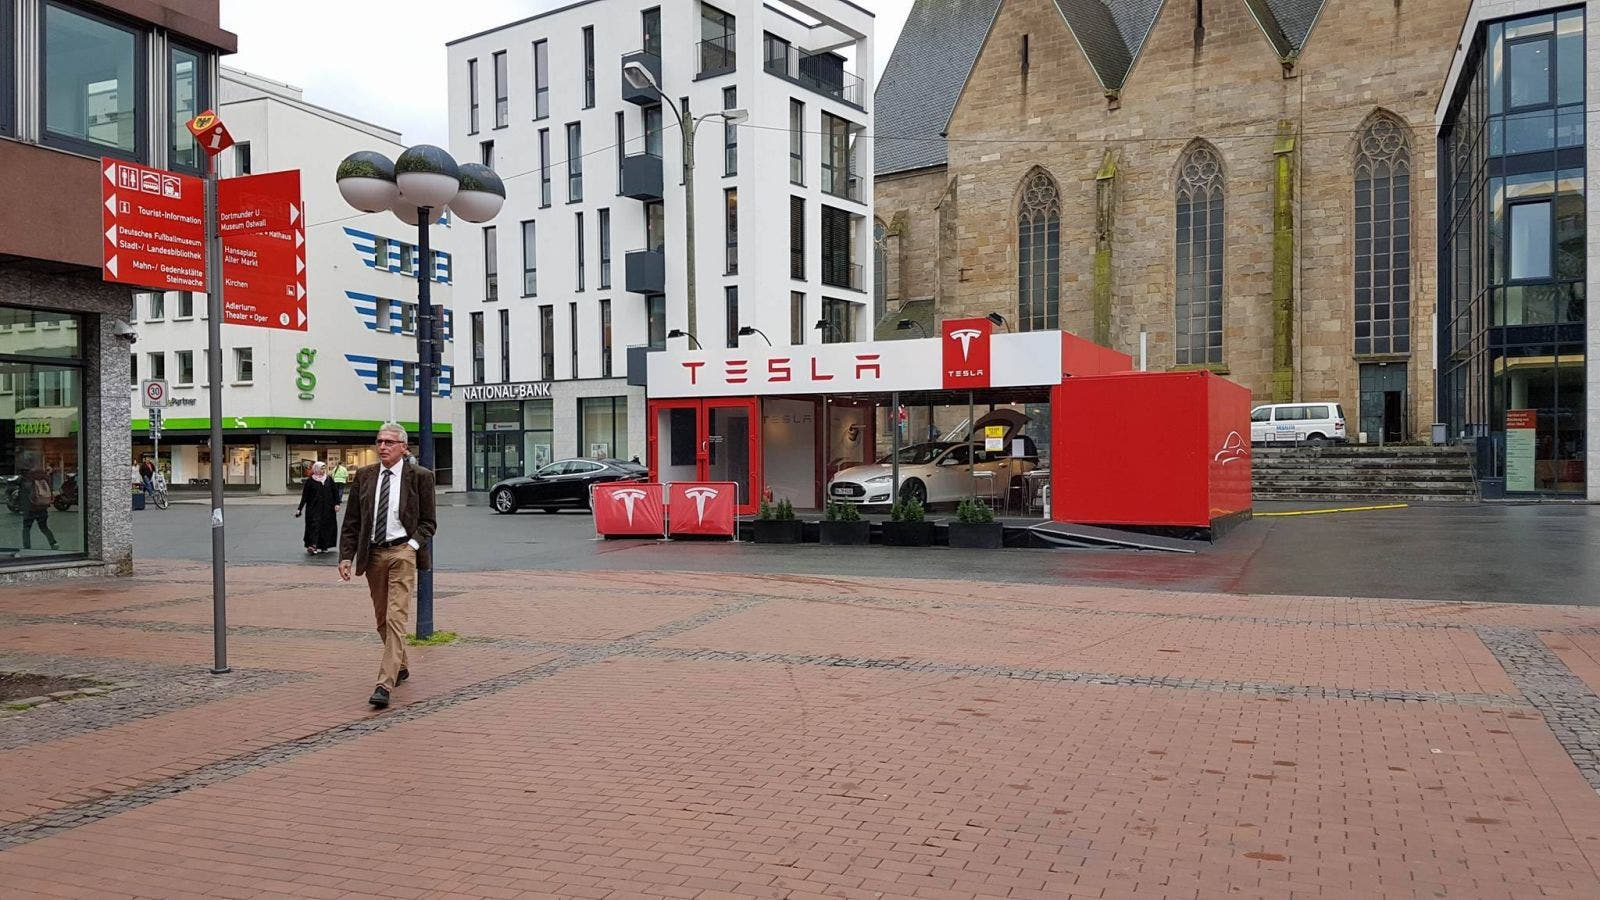 Tesla Pop Up Store in Dortmund